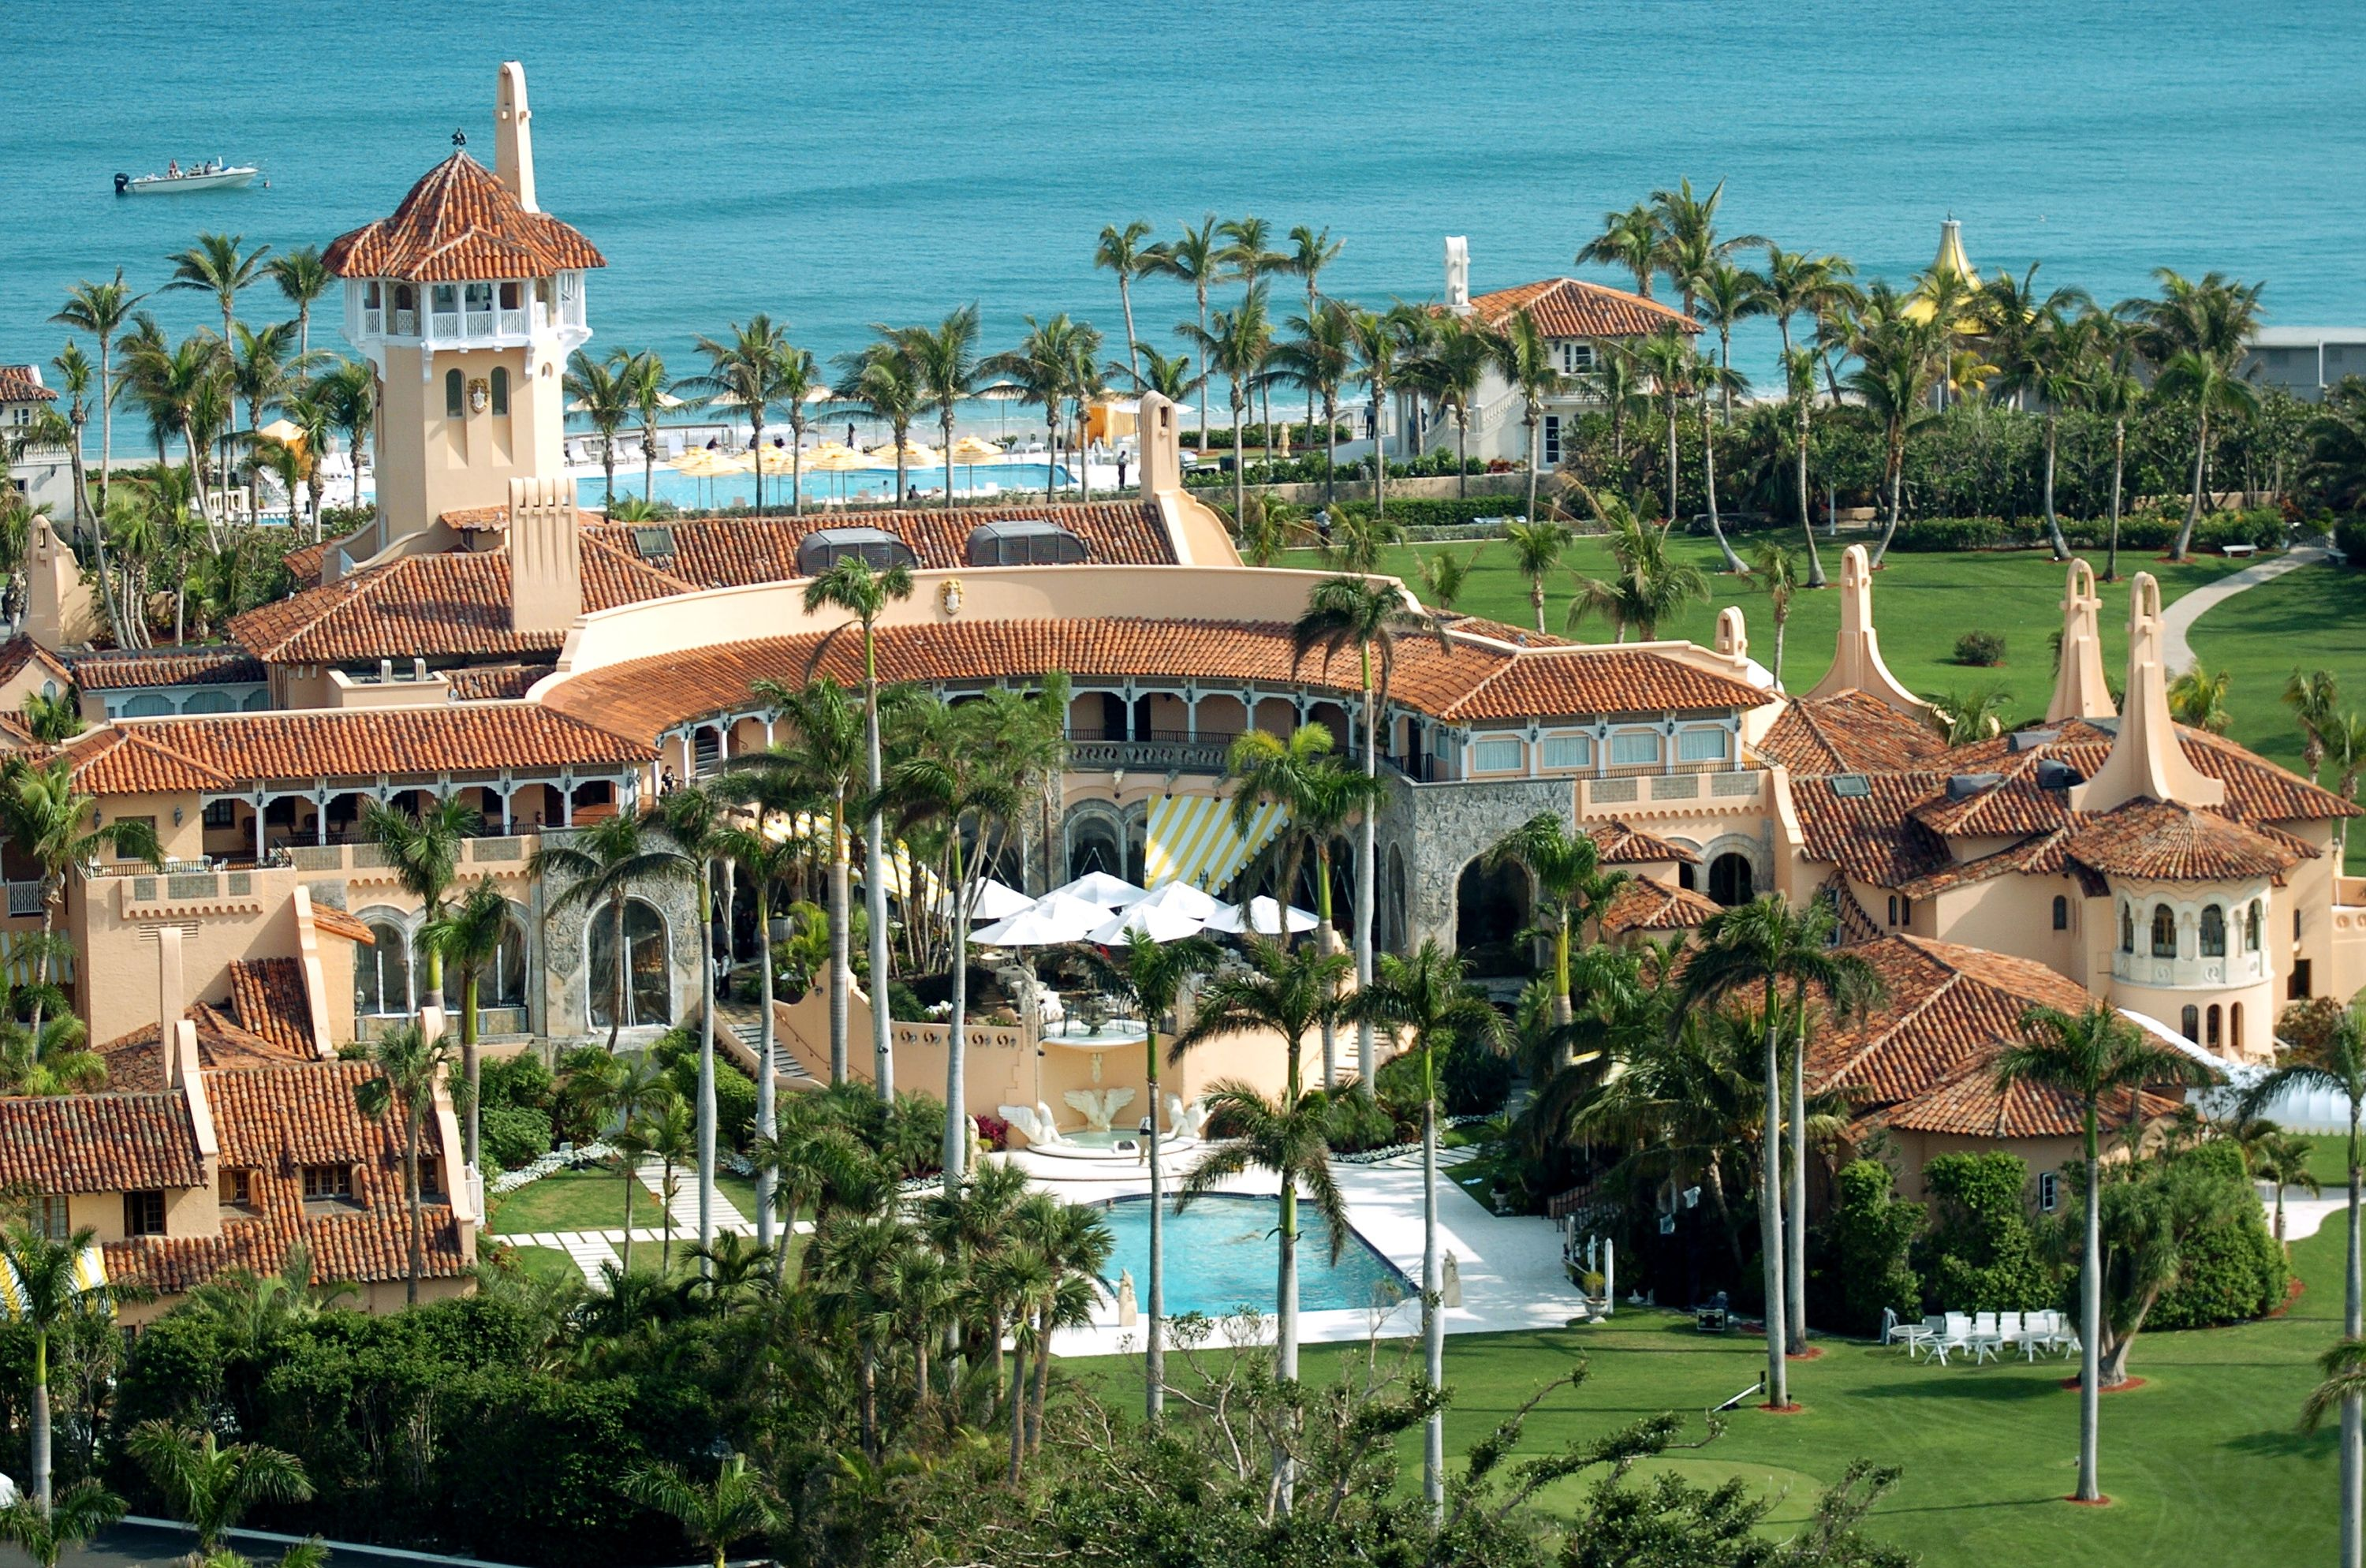 Donald Trump S Mar A Lago Estate Facts